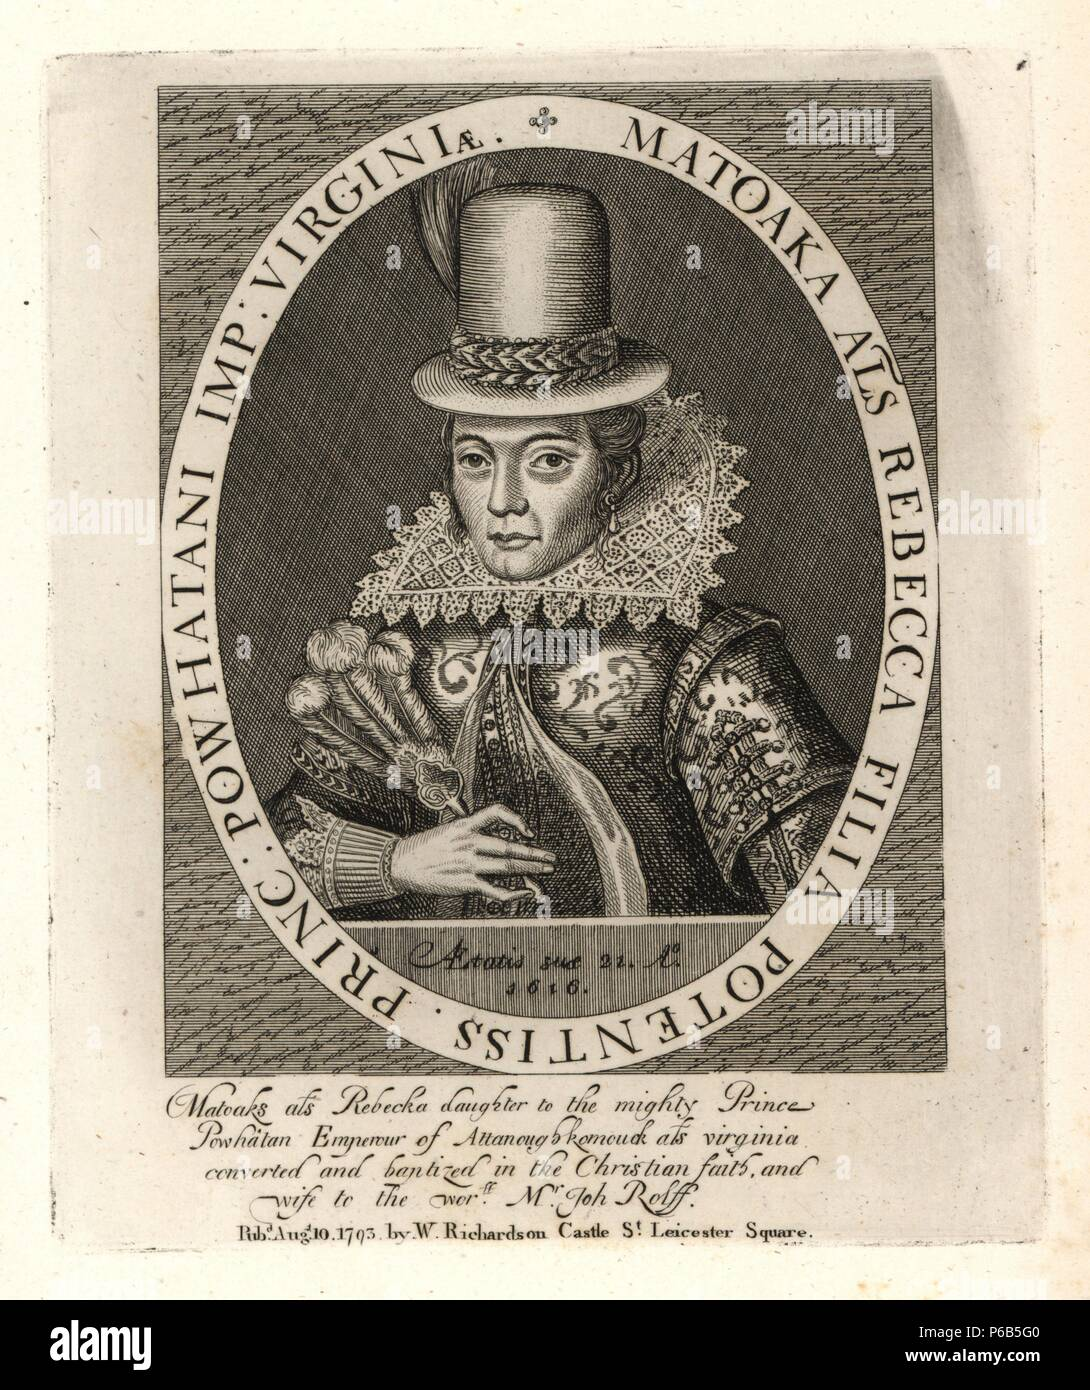 """Matoaka, Pocahontas, later Rebecca Rolfe, daughter of the mighty Powharan, Emperor of Attanoughkomouck, or Virginia, and wife of John Rolfe, died 1617. From a curious print by Simon de Passe in Smith's """"History of Virginia."""" Copperplate engraving from Richardson's """"Portraits illustrating Granger's Biographical History of England,"""" London, 1792–1812. Published by William Richardson, printseller, London. James Granger (1723–1776) was an English clergyman, biographer, and print collector. Stock Photo"""